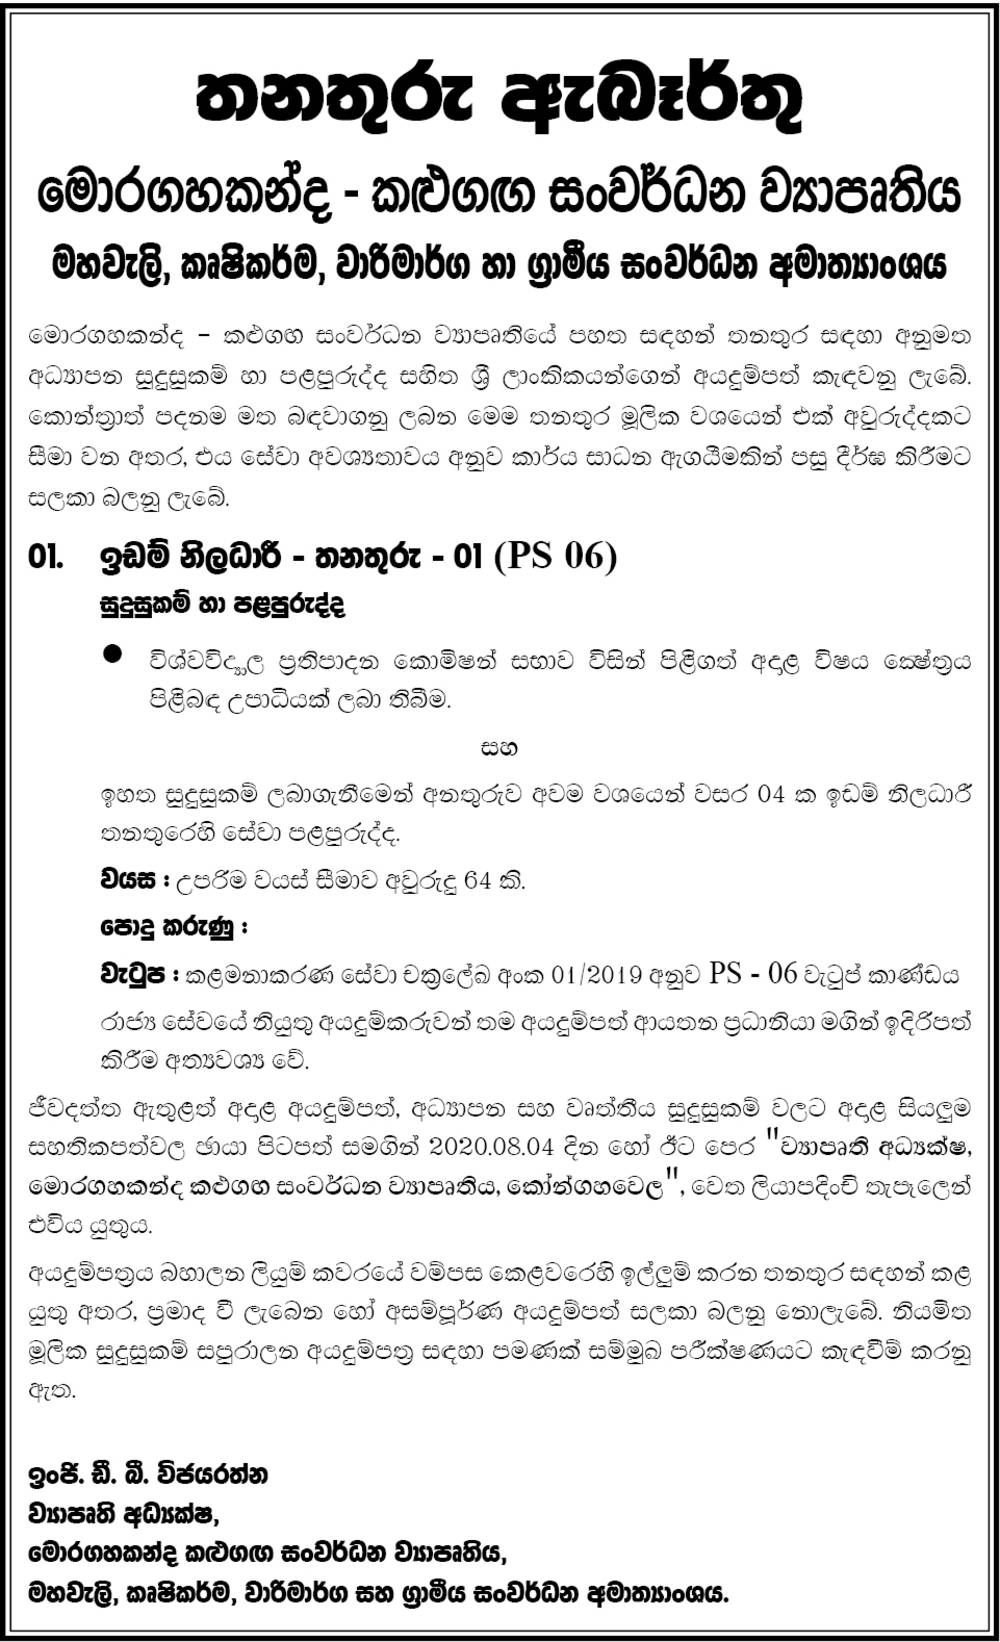 Land Officer - Ministry of Mahaweli, Agriculture, Irrigation & Rural Development